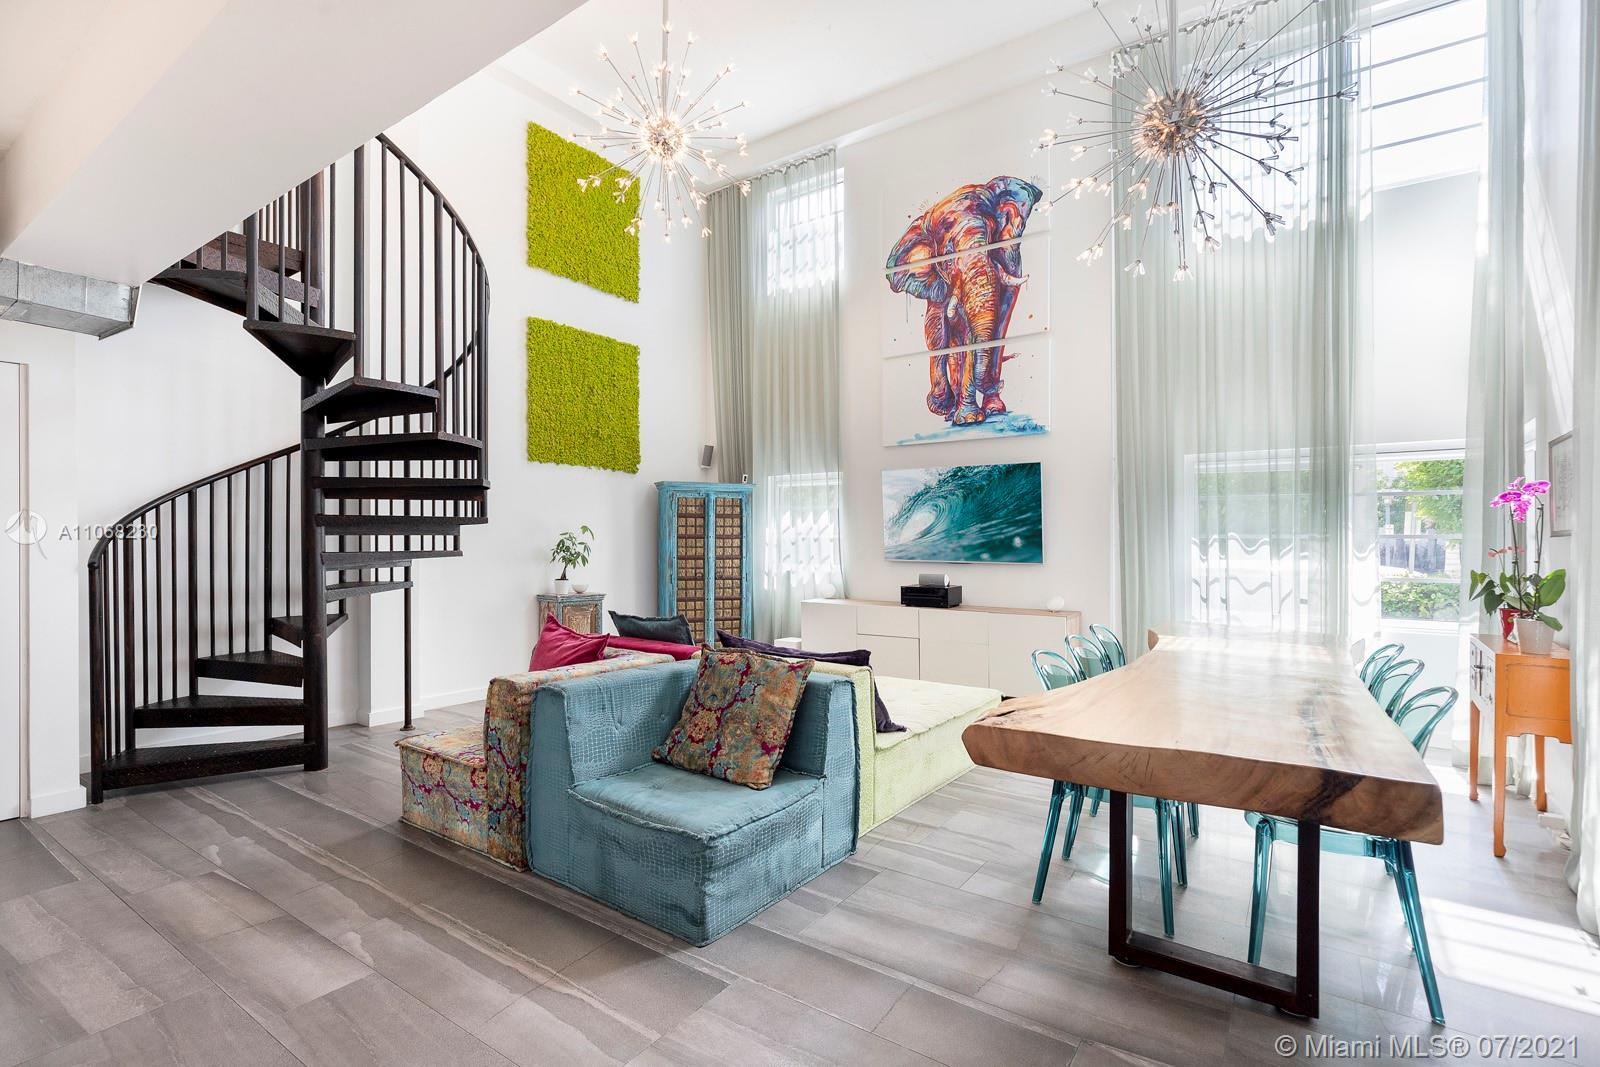 Situated in the heart of South Beach, this 3 BD/3 BA unit is located in The Montclair - a 5-story, b